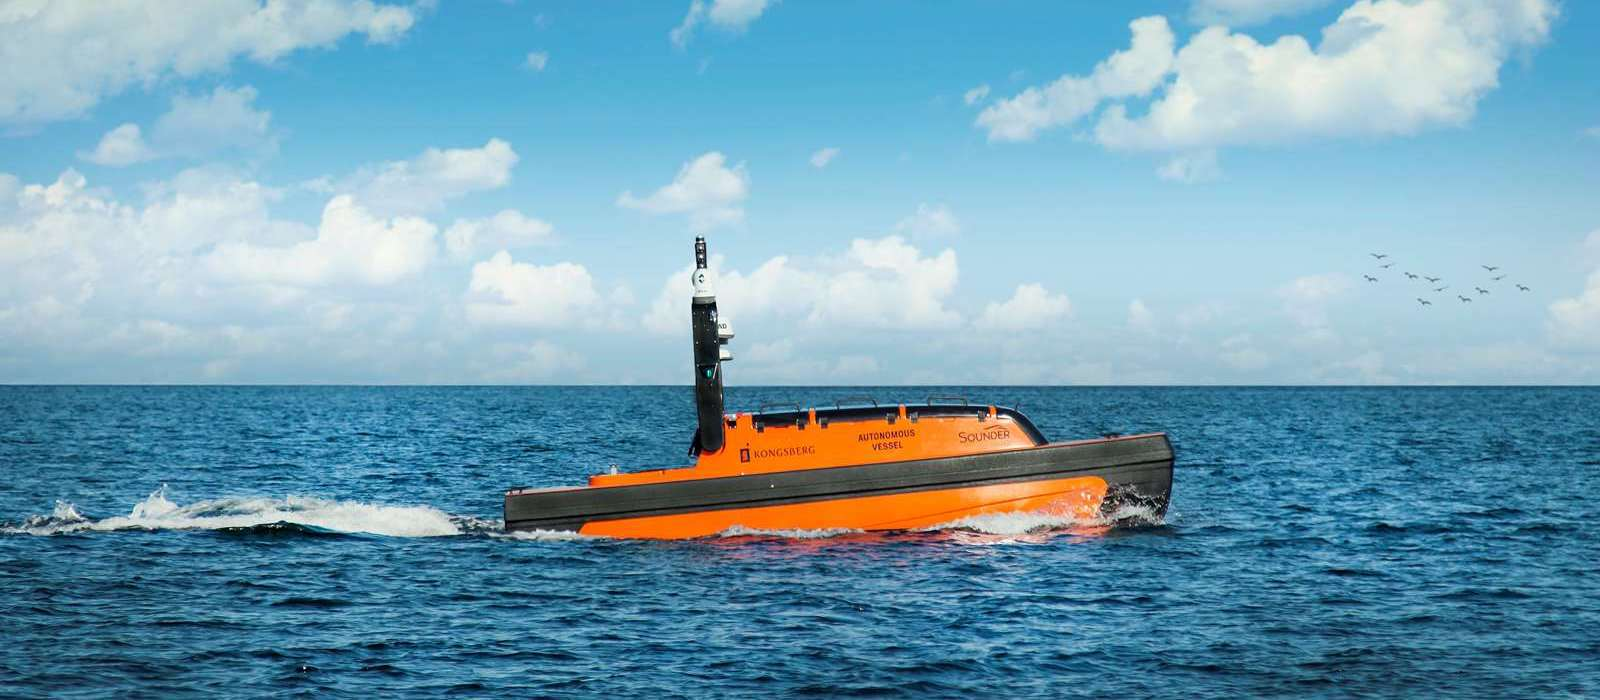 Peruvian fishing company is first to order Sounder USV